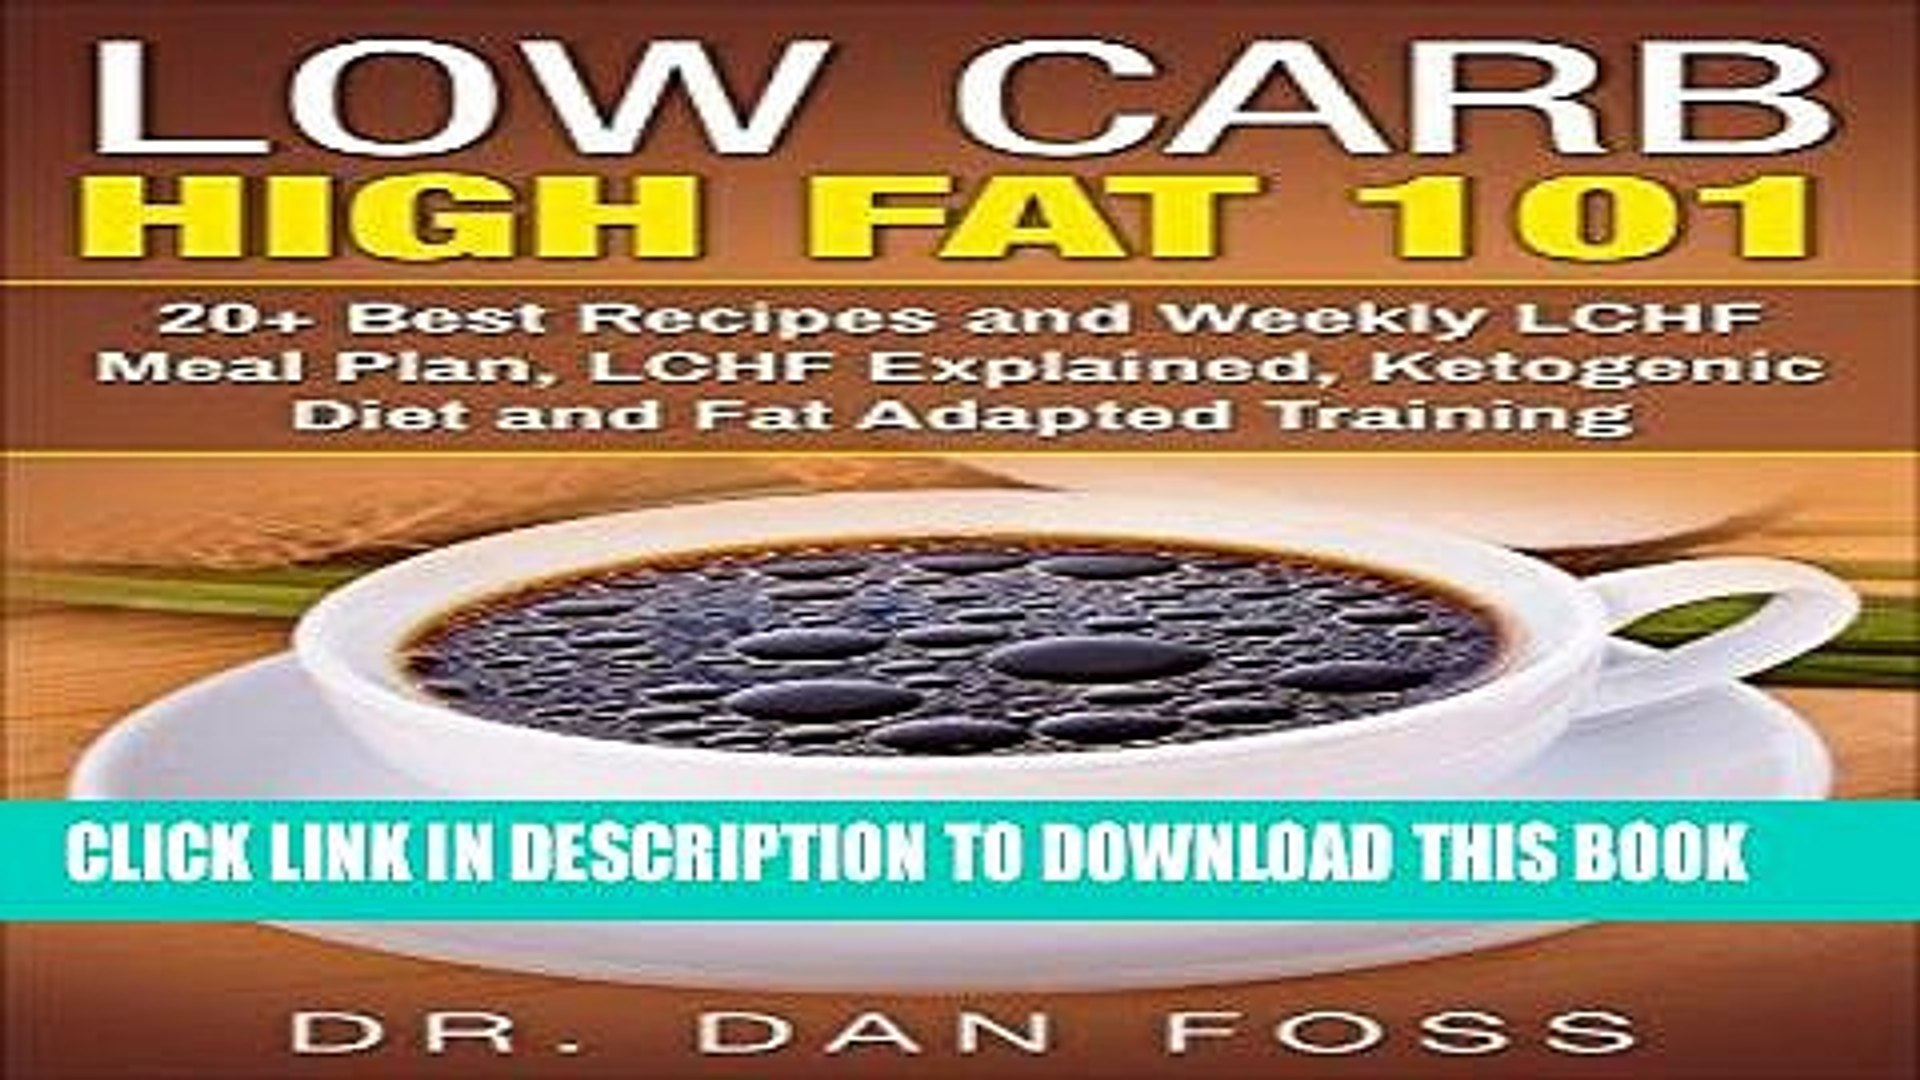 Read Now Low Carb High Fat 101 20 Best Recipes And Weekly Lchf Meal Plan Lchf Explained Video Dailymotion